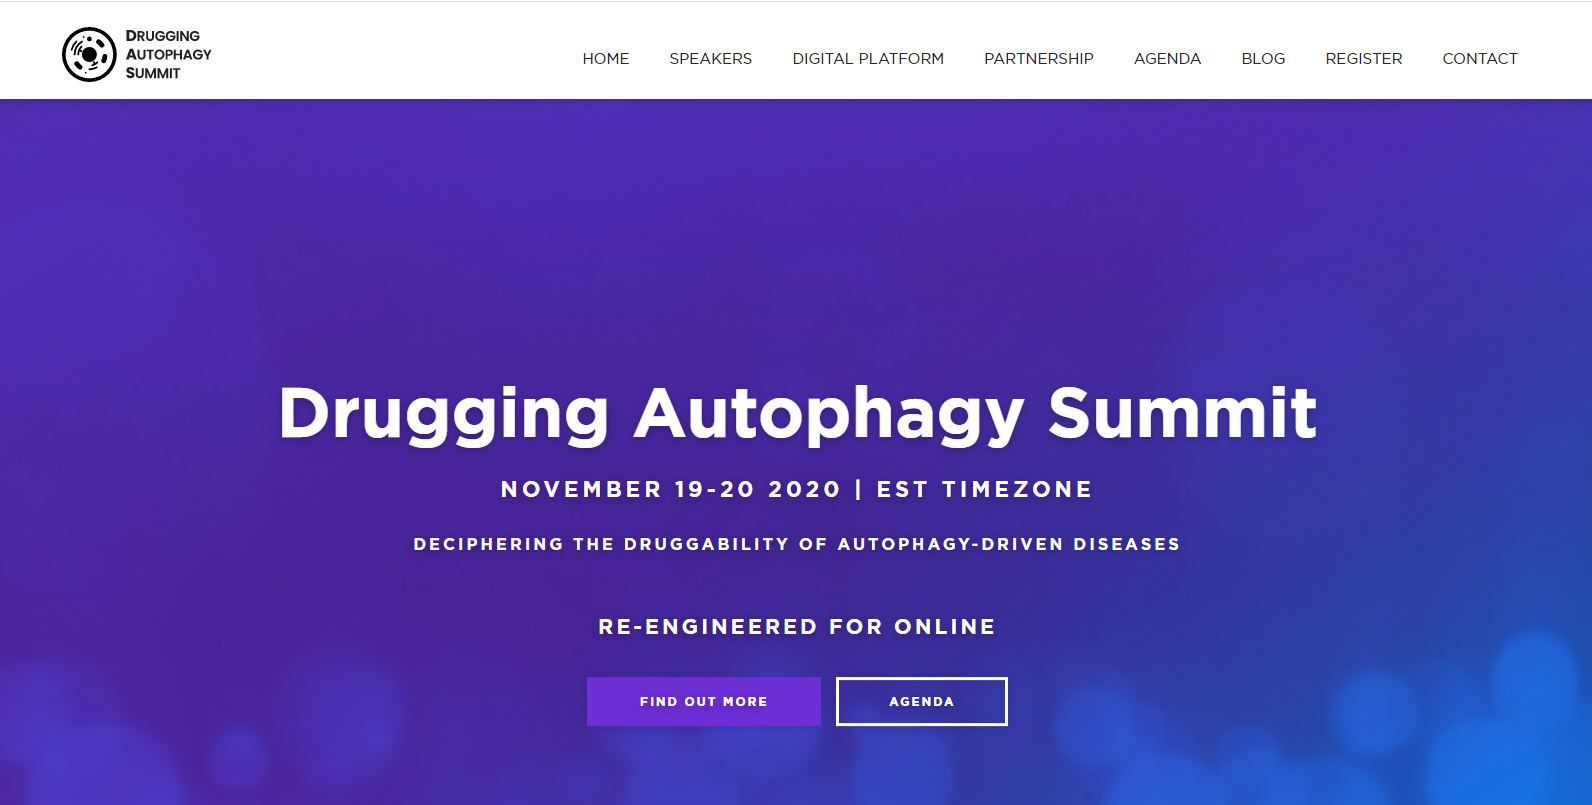 2020 Drugging Autophagy Summit